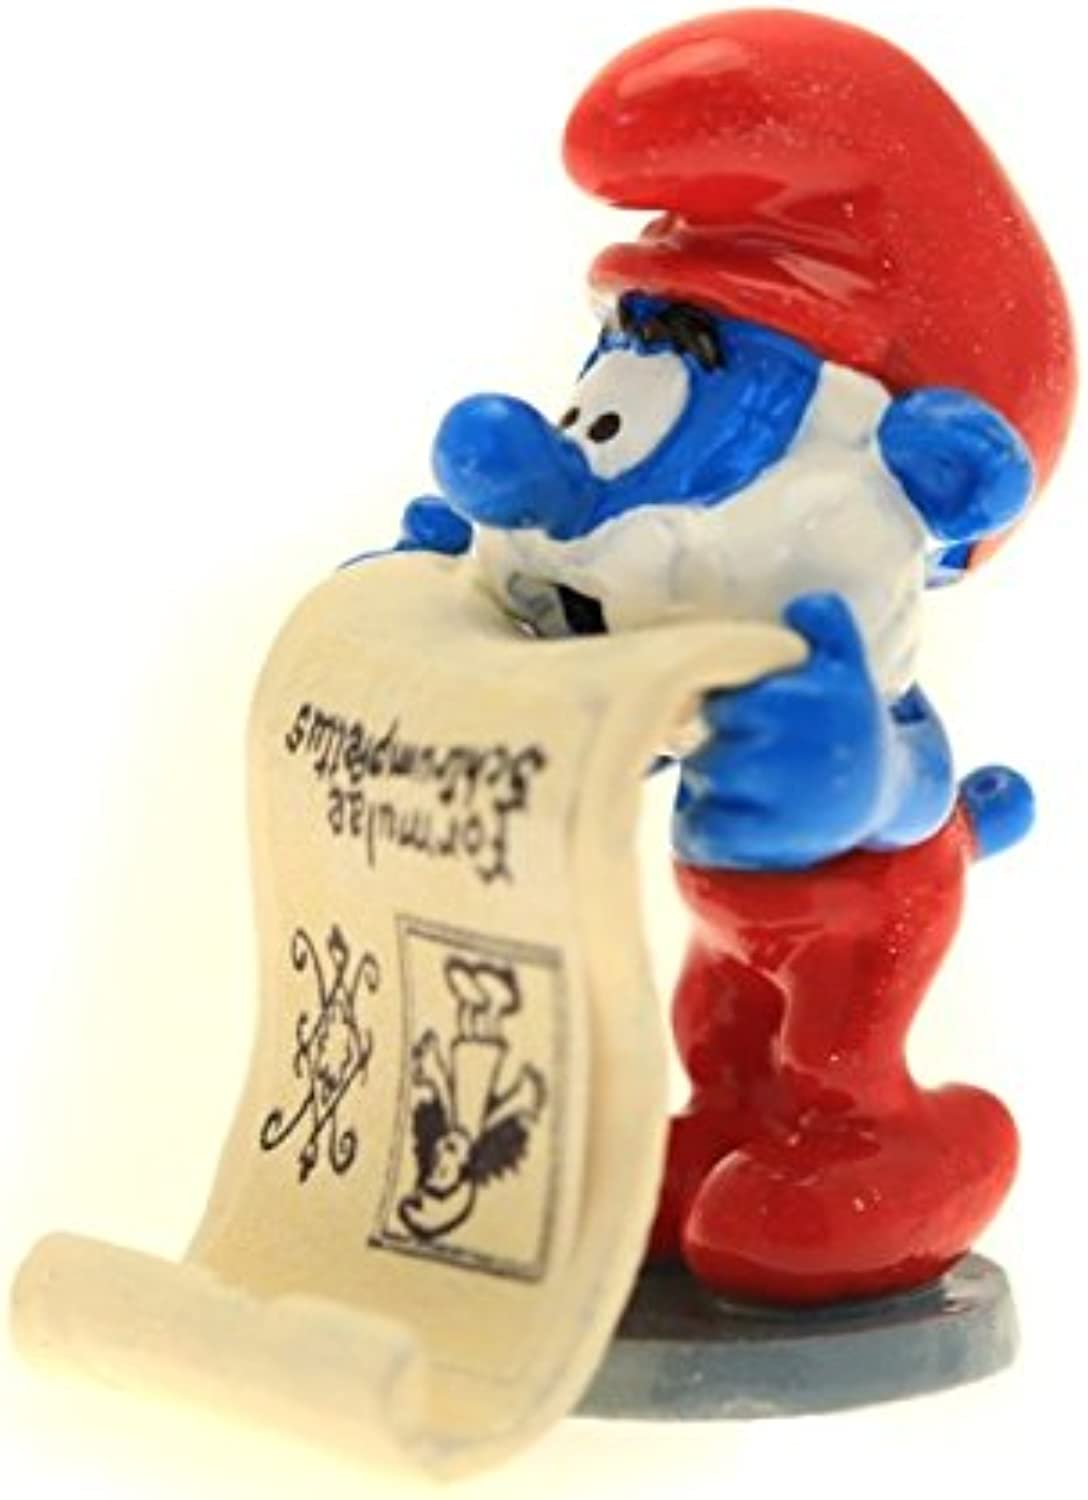 Collectible Figure Pixi Papa Smurf with the formula sign 6418 (2016)